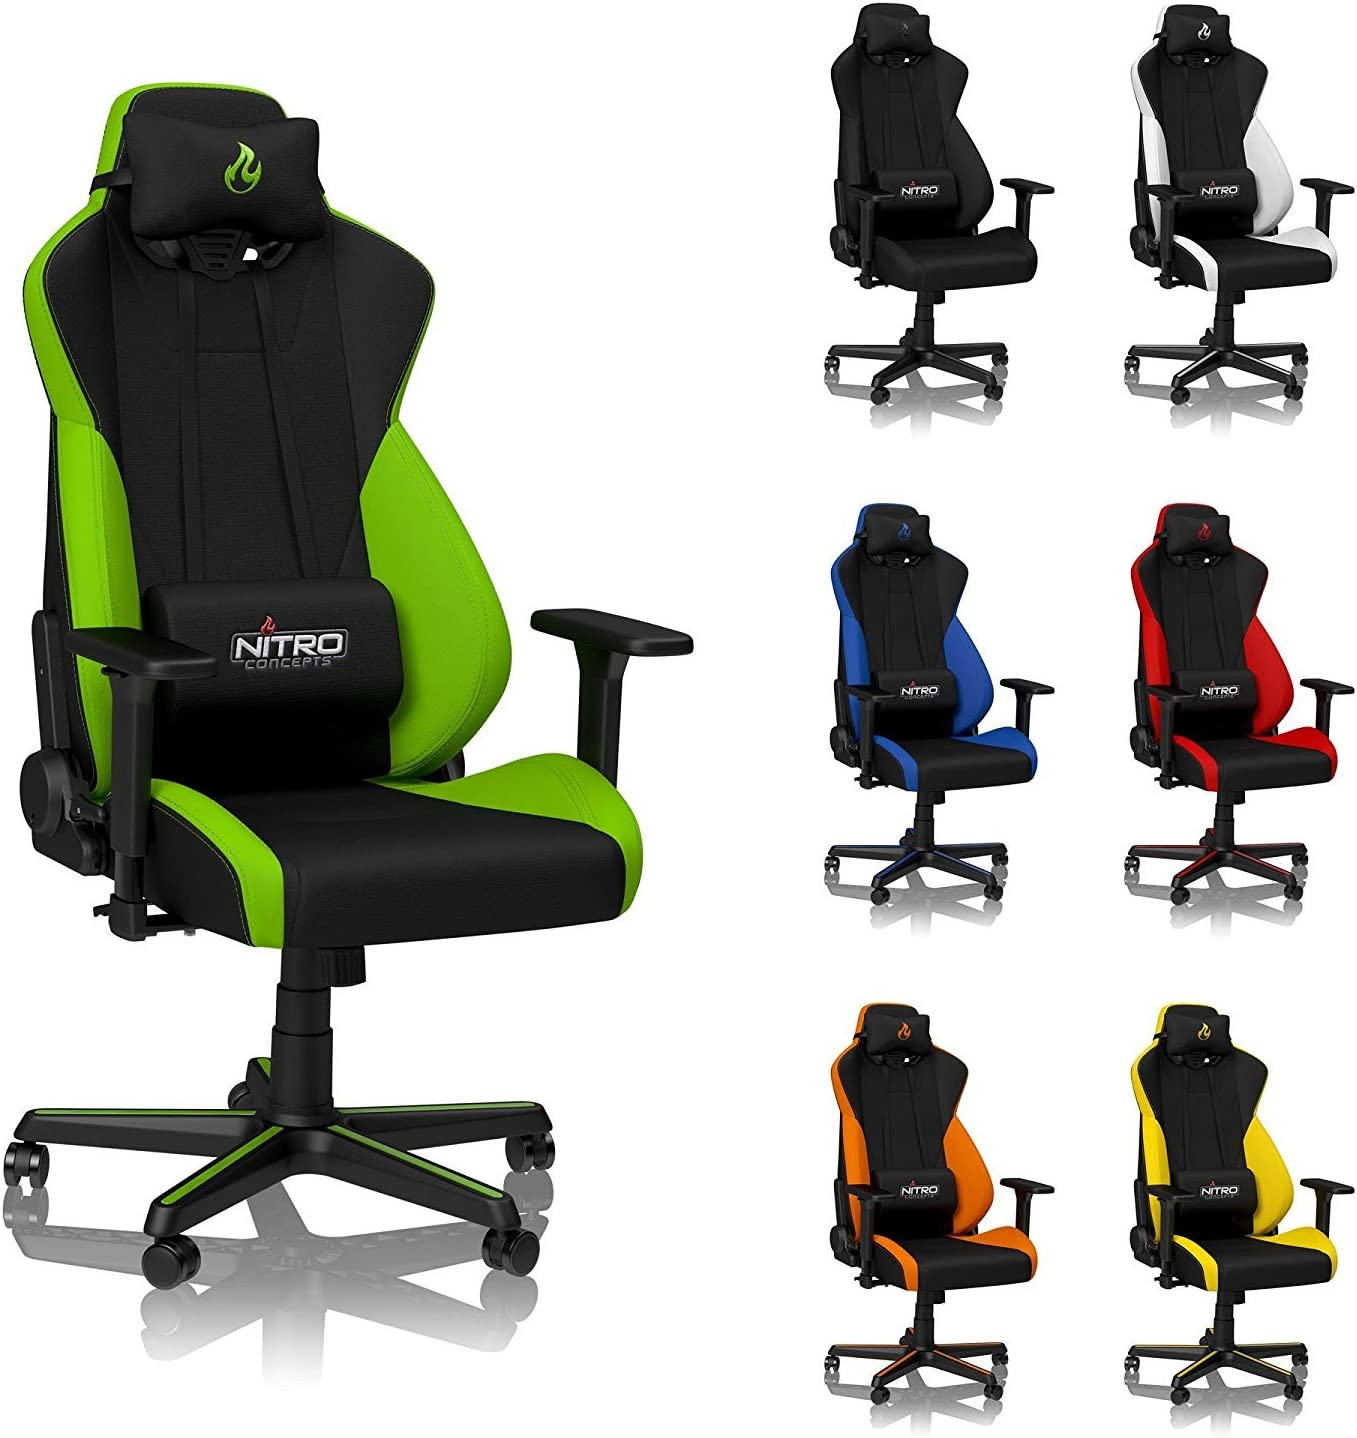 NITRO CONCEPTS S300 Gaming Chair – Atomic Green – Office Chair – Ergonomic – Cloth Cover – Up to 300 lbs Users – 90 to 135 Reclinable – Adjustable Height Armrests